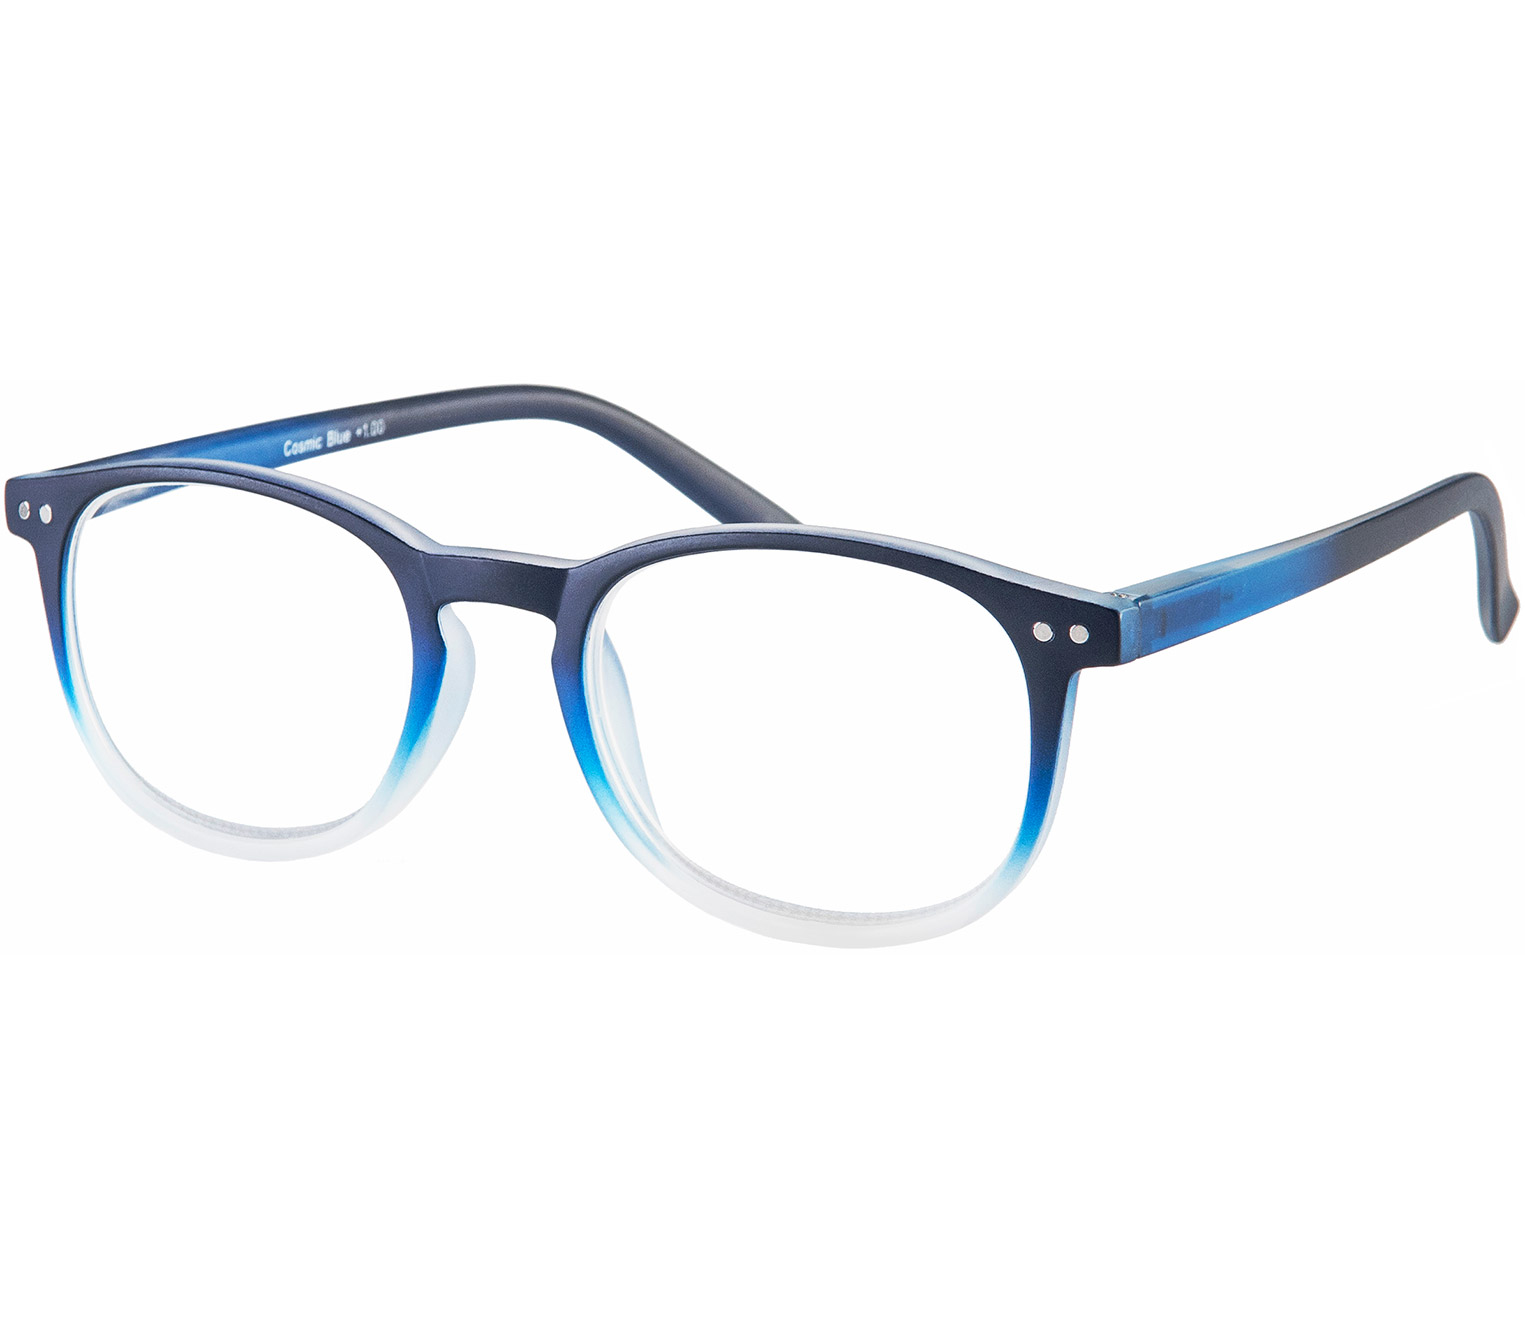 Main Image (Angle) - Cosmic (Blue) Retro Reading Glasses